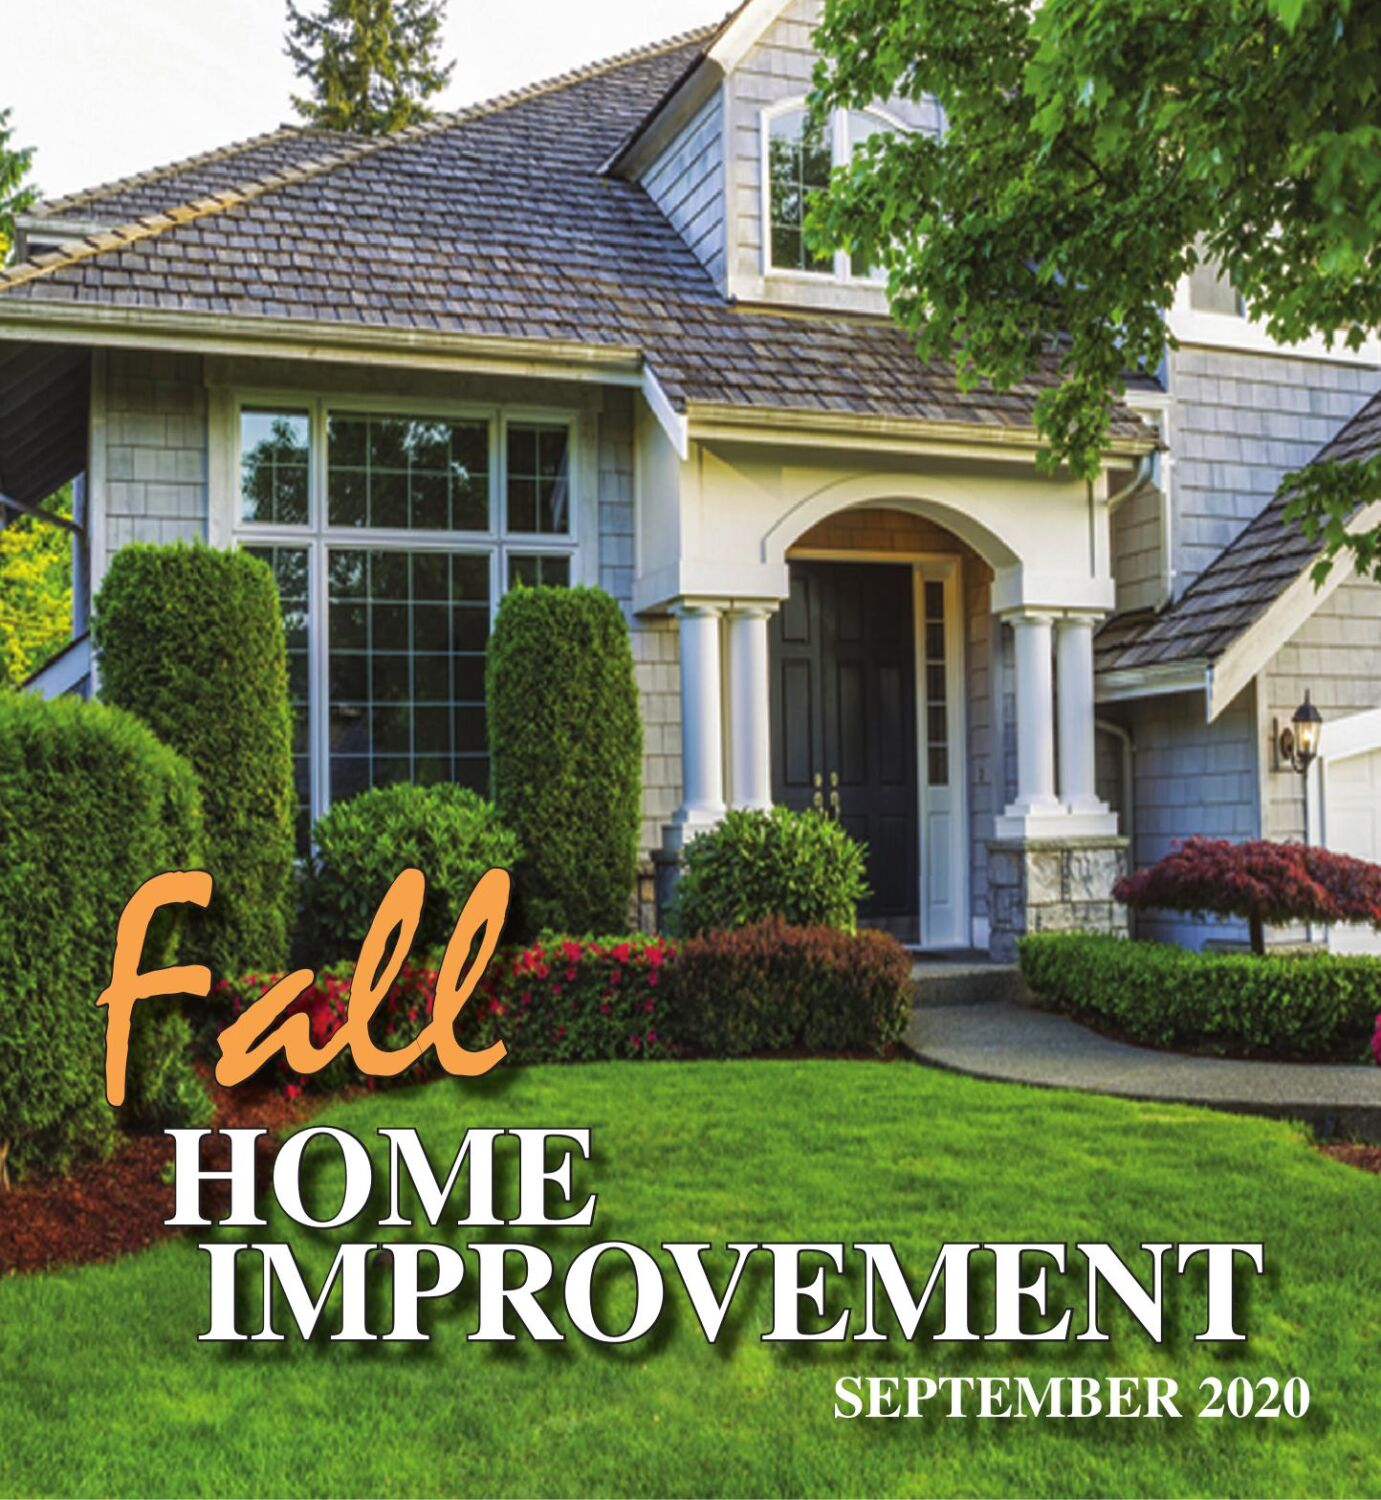 Fall Home Improvement